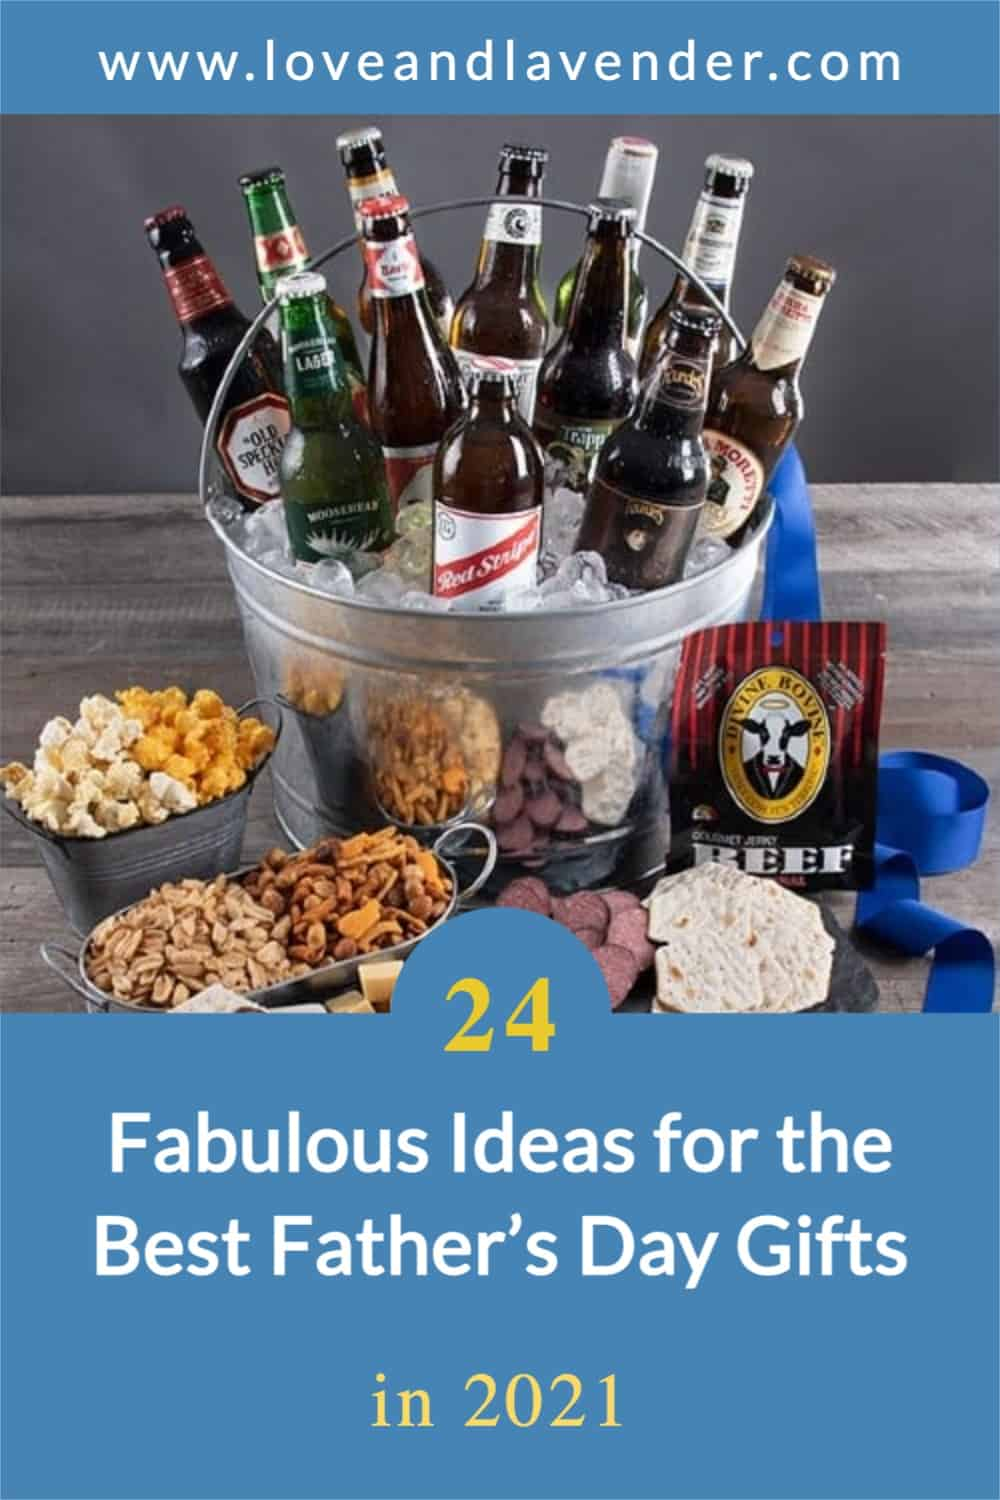 pinterest pin - father's day gift ideas